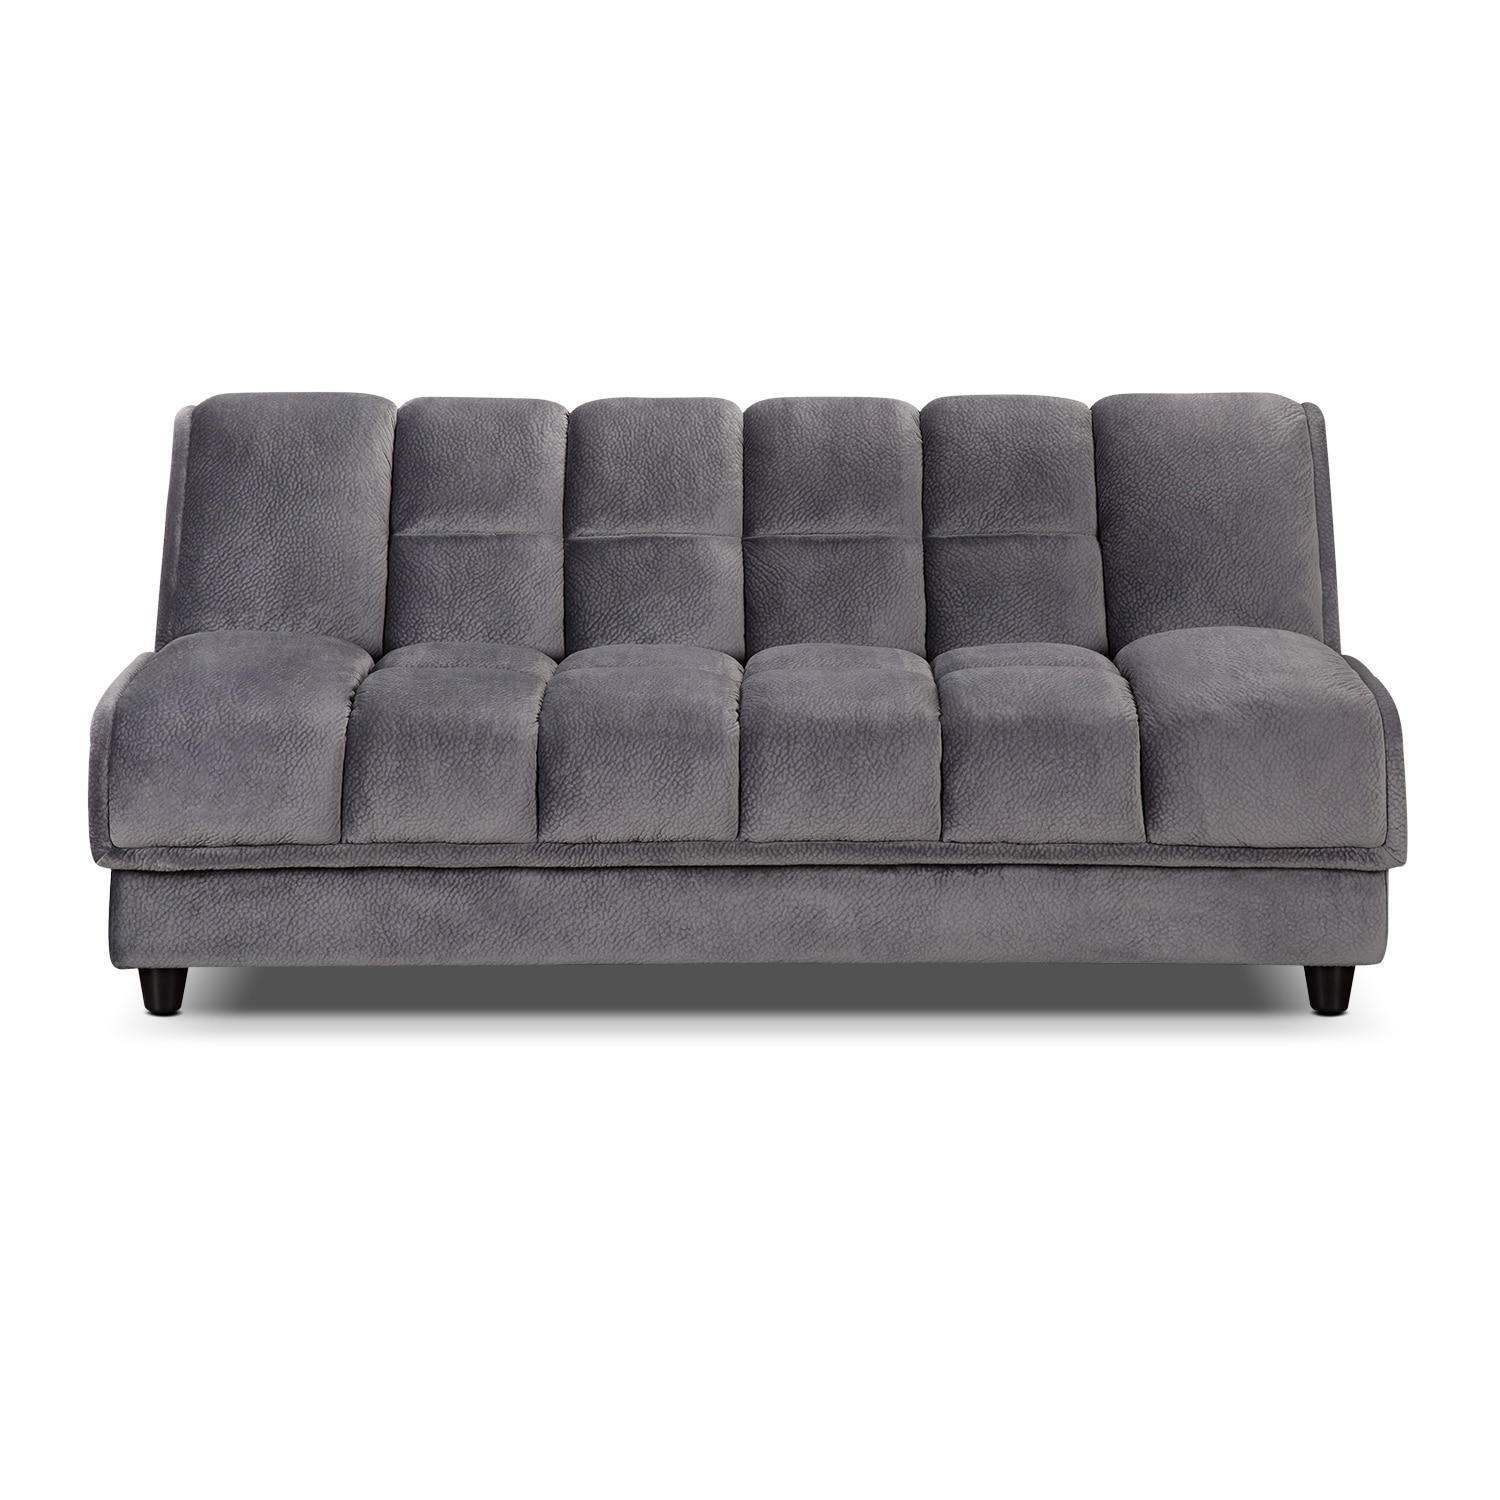 Bennett Futon Sofa Bed - Gray